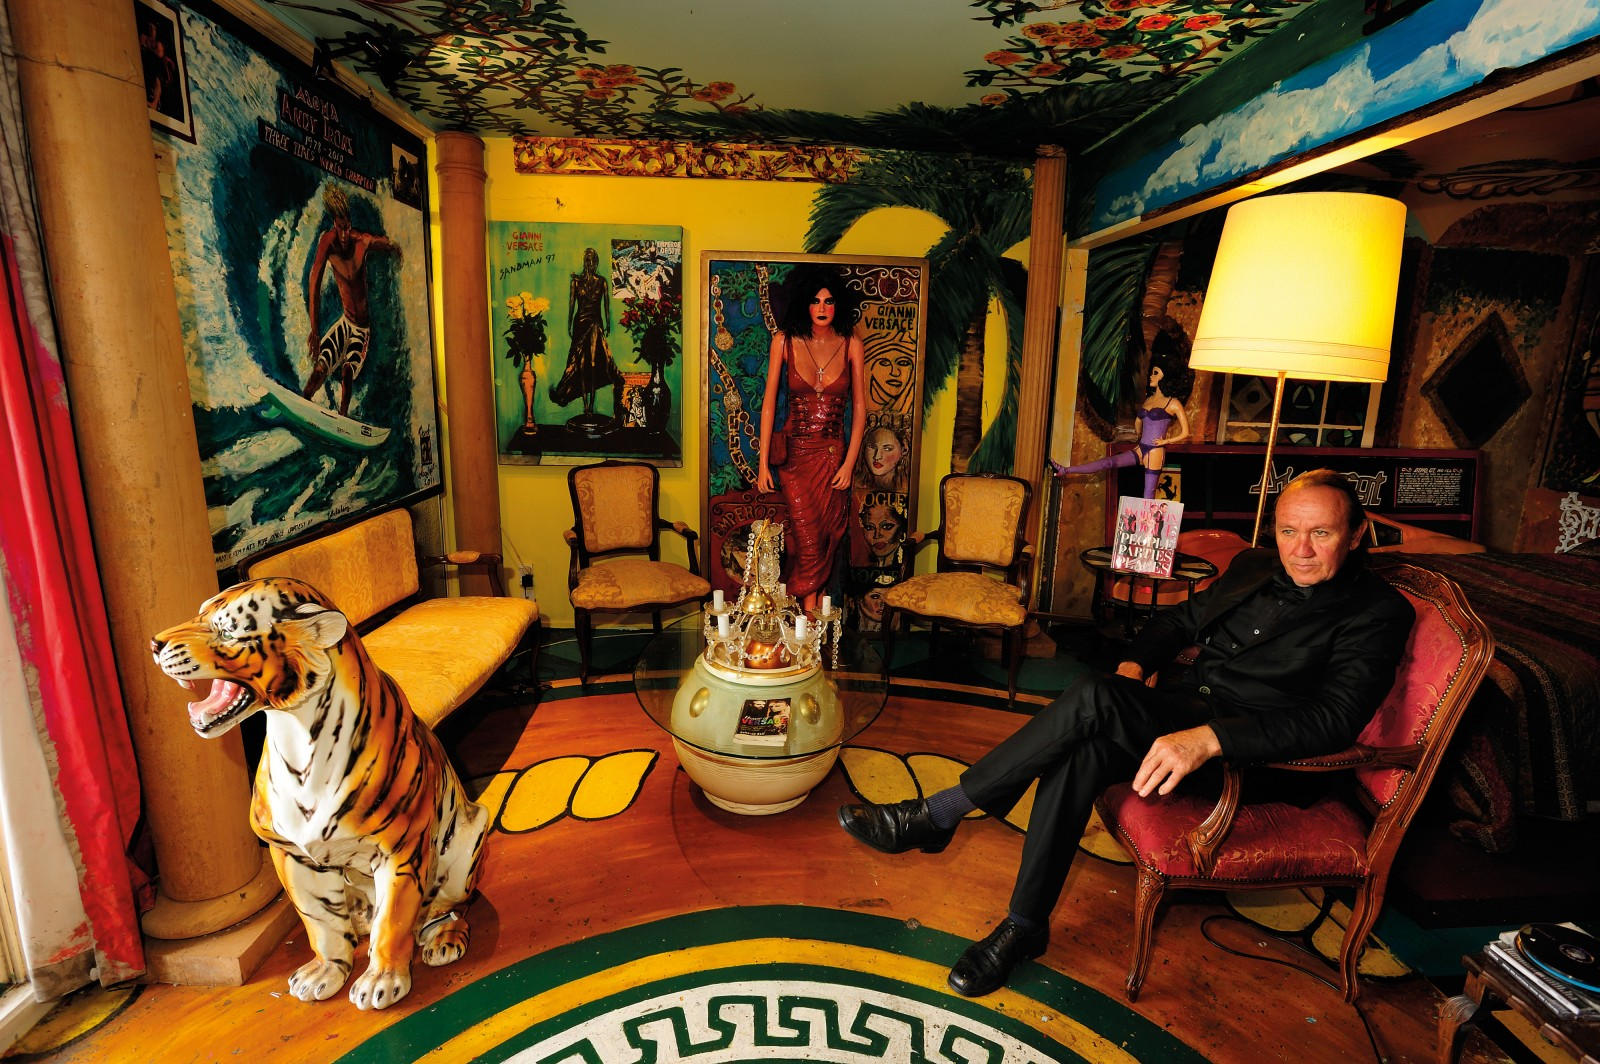 Artist and former competitive surfer Mark Sandman is surrounded by his three-dimensional Versace paintings and tribute to three-time World Surfing Champion Andy Irons, in his Knightsbridge apartment on K' Road.